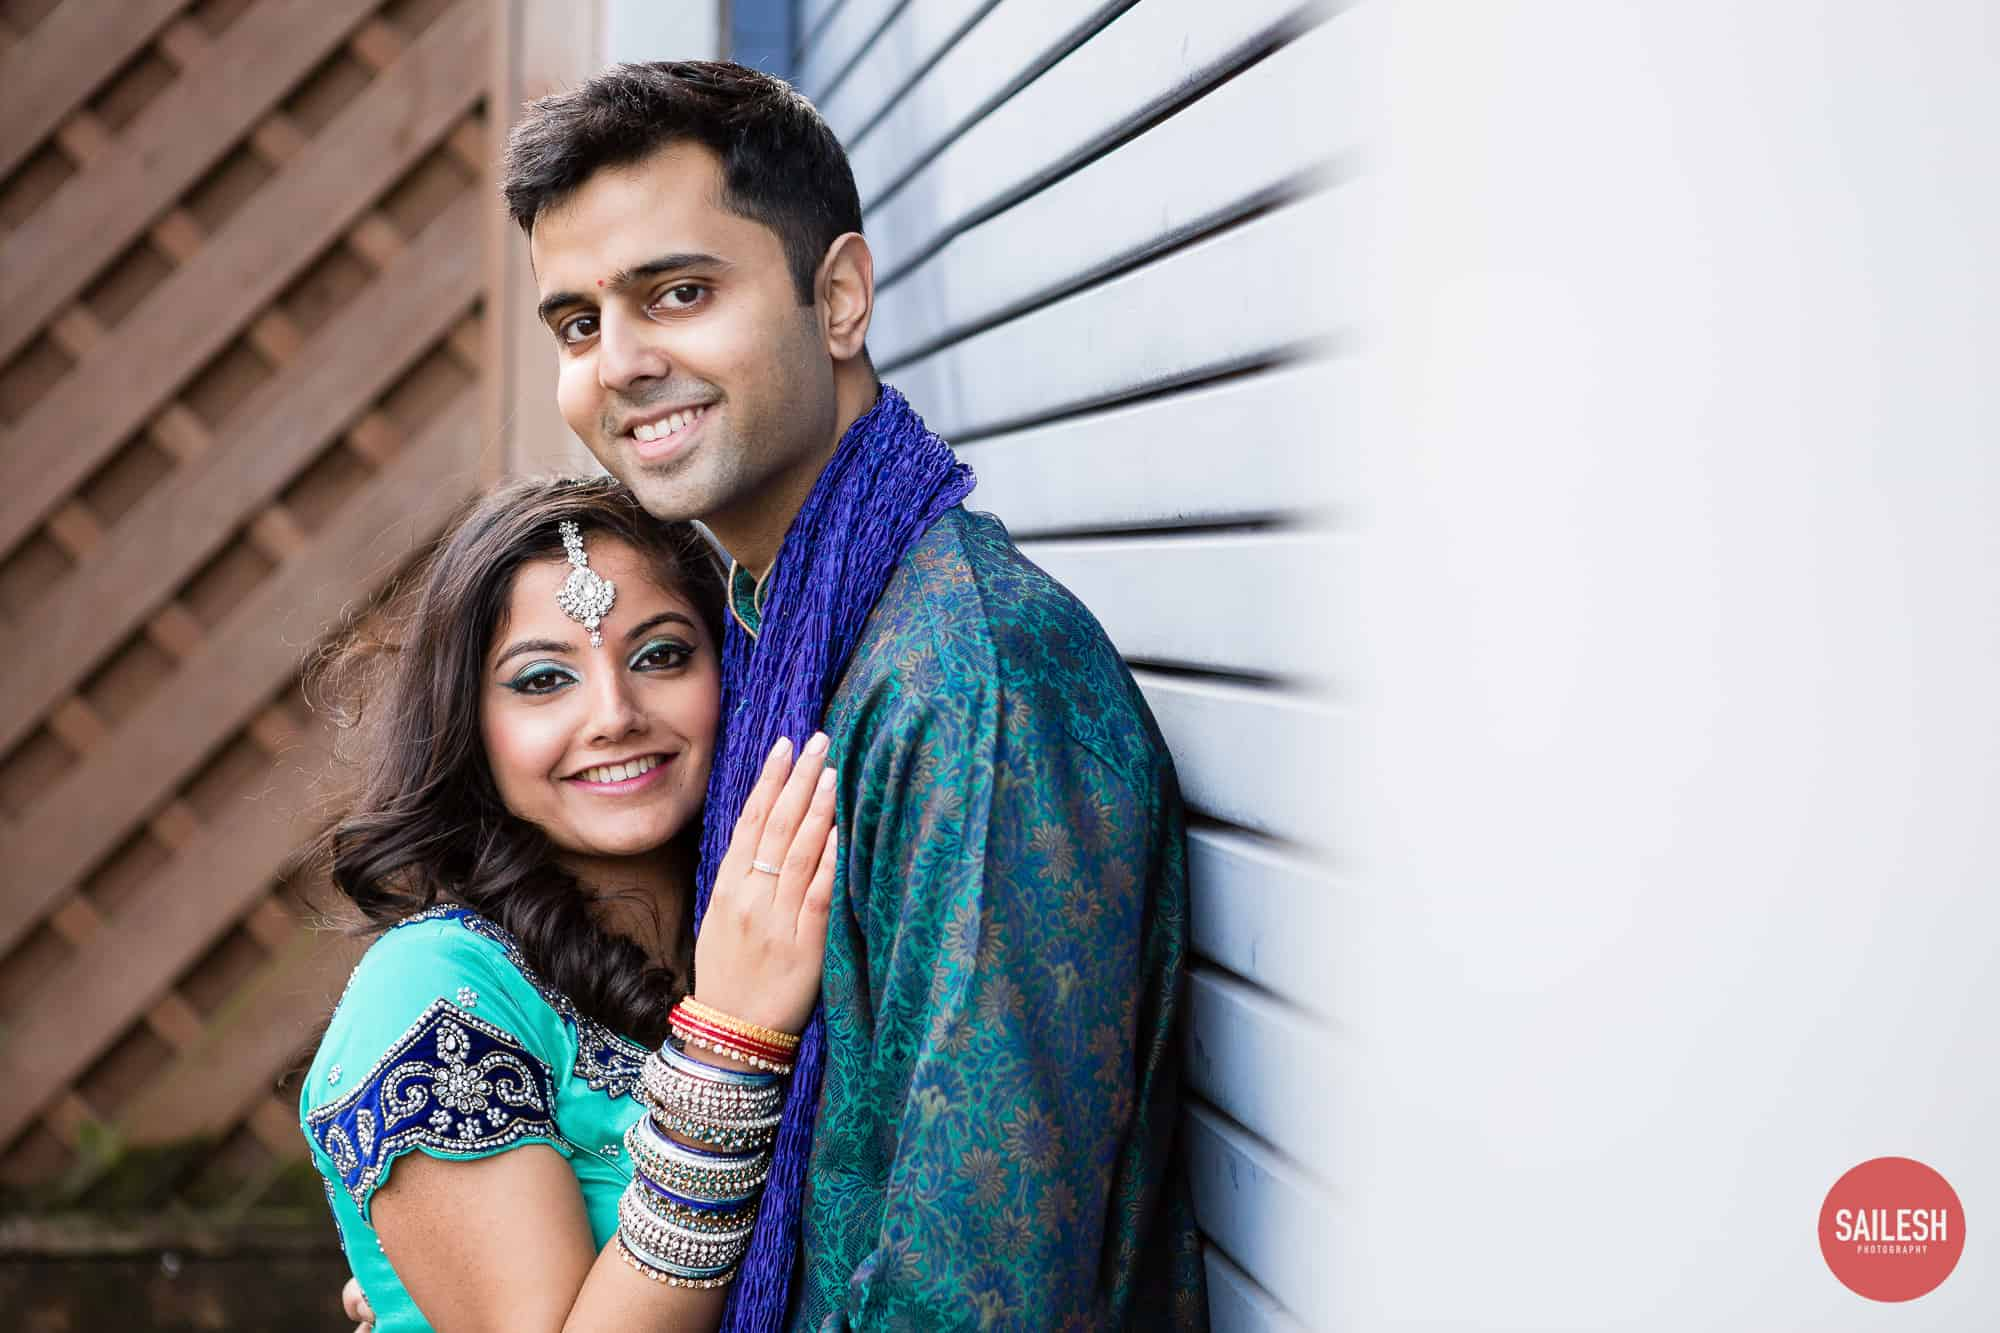 neilbansri_engagement-713